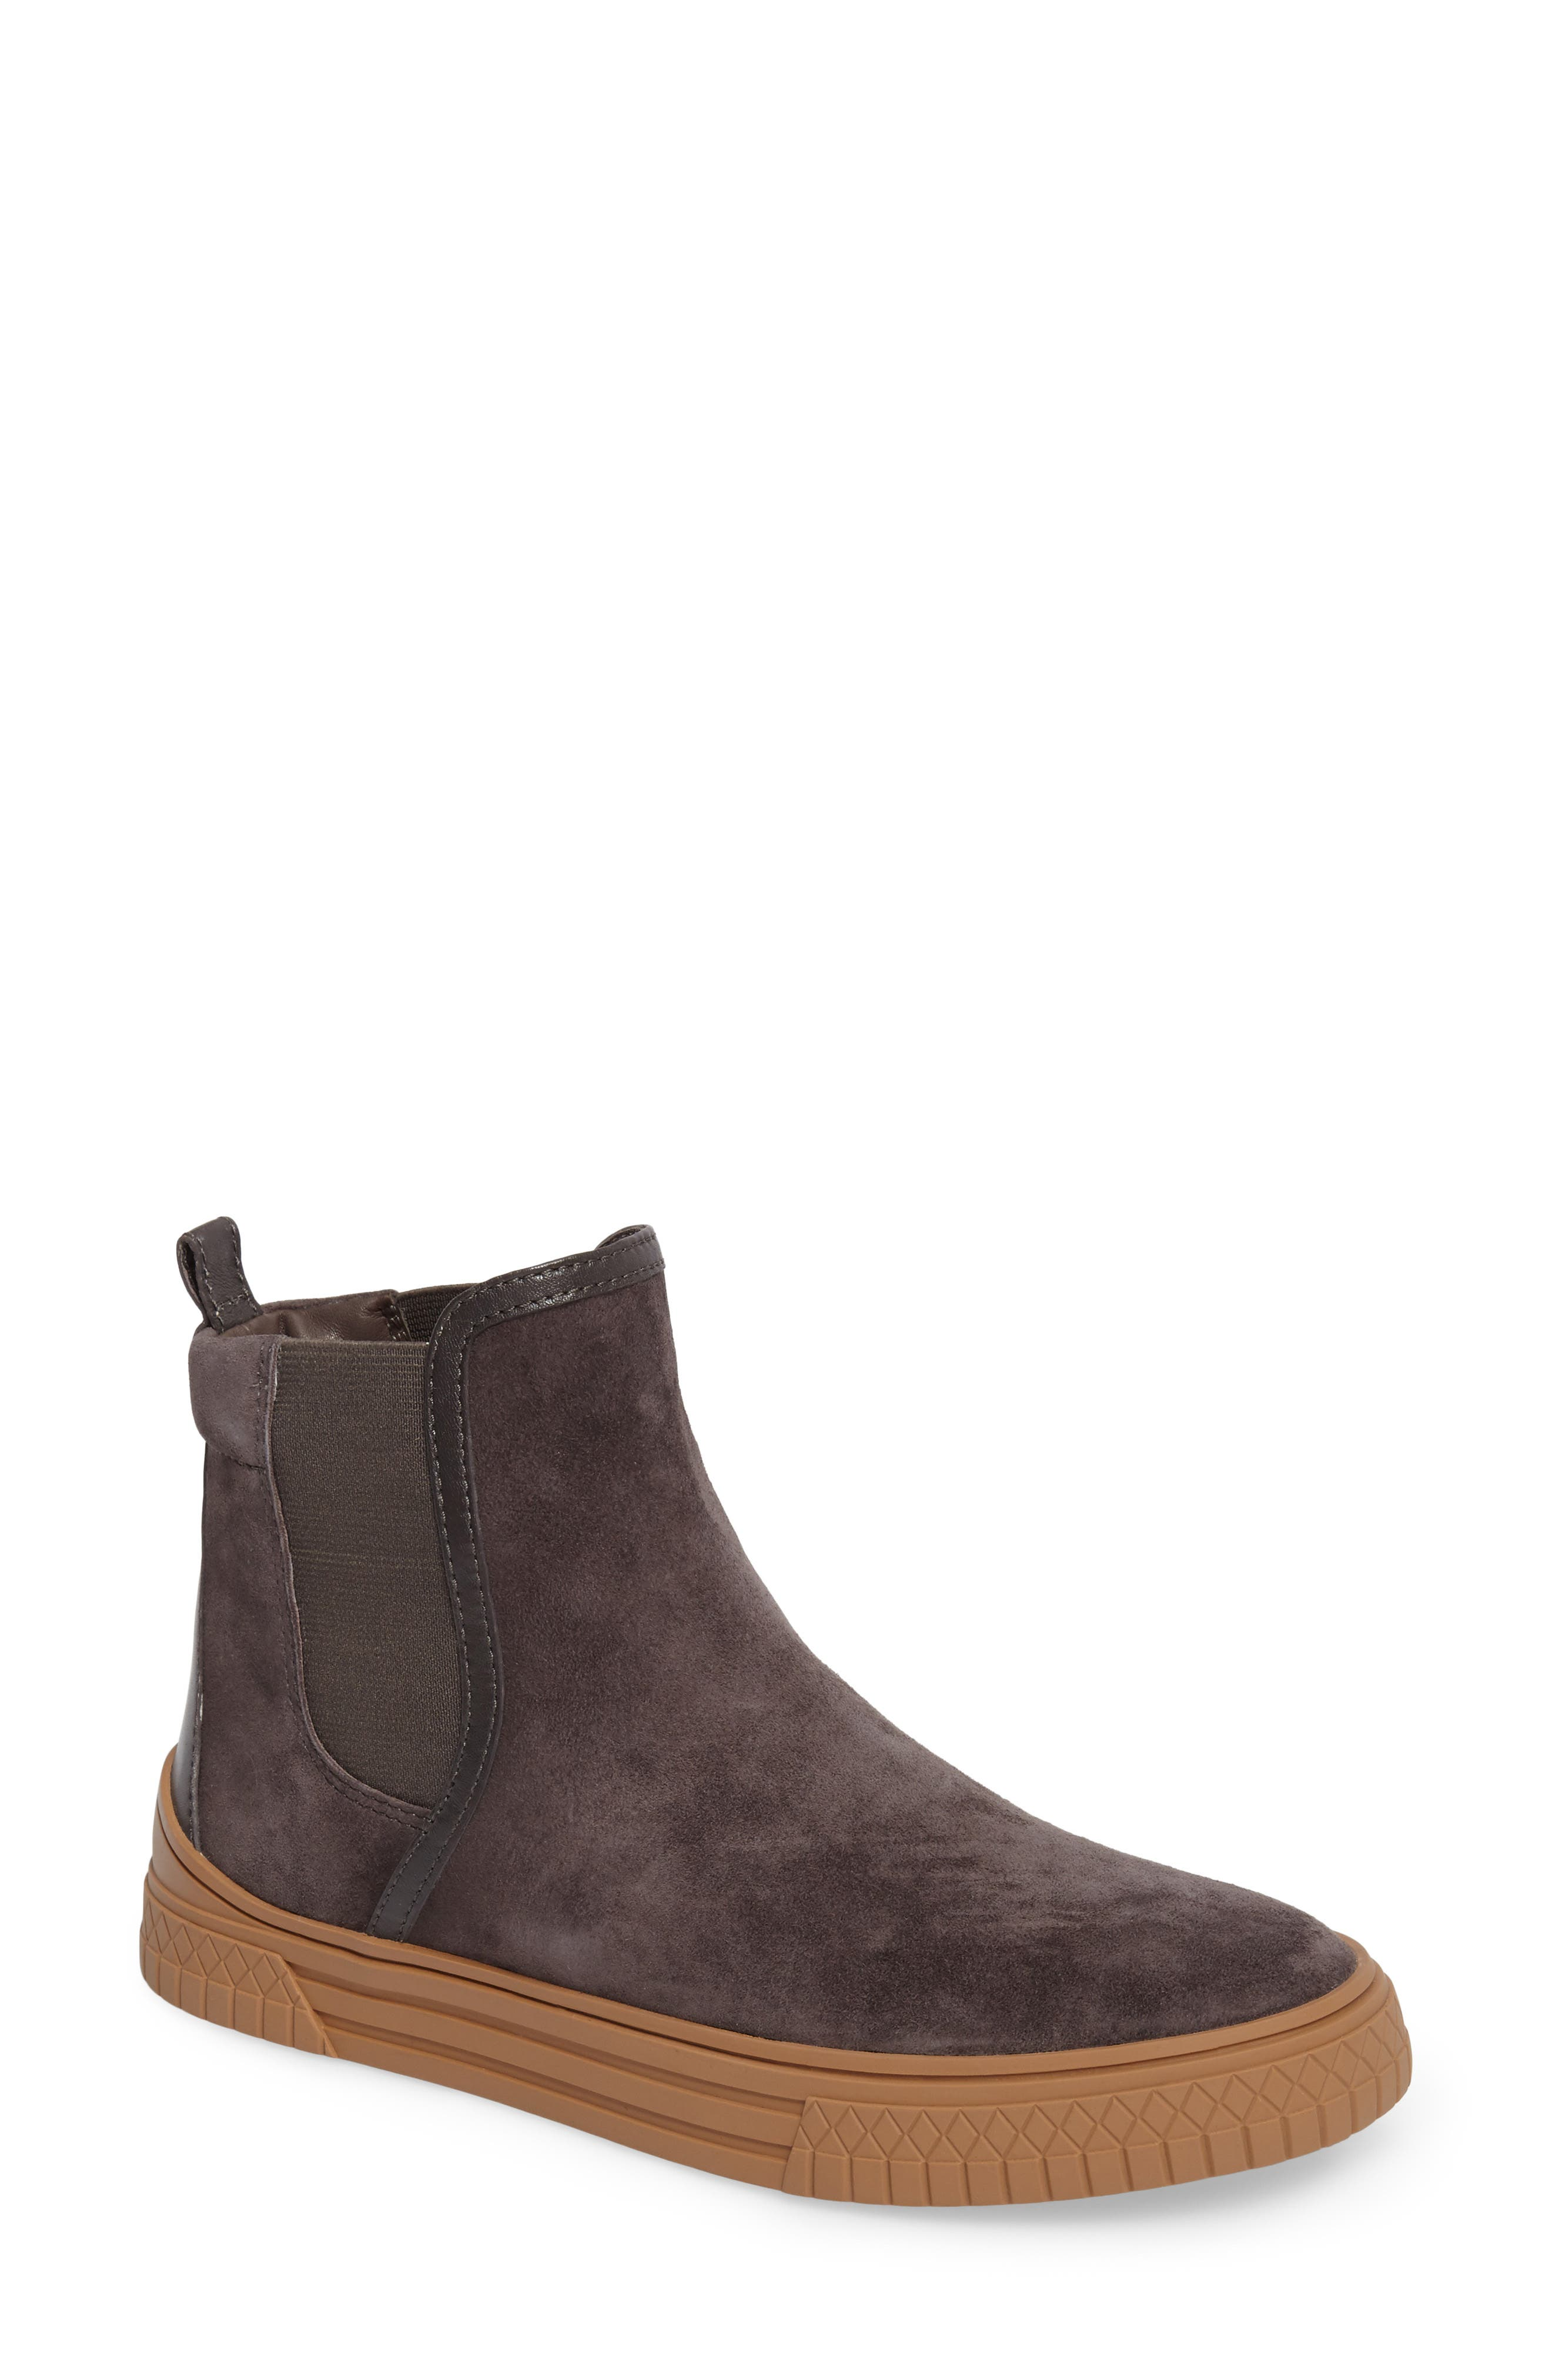 Main Image - Linea Paolo Gage Chelsea Boot (Women)